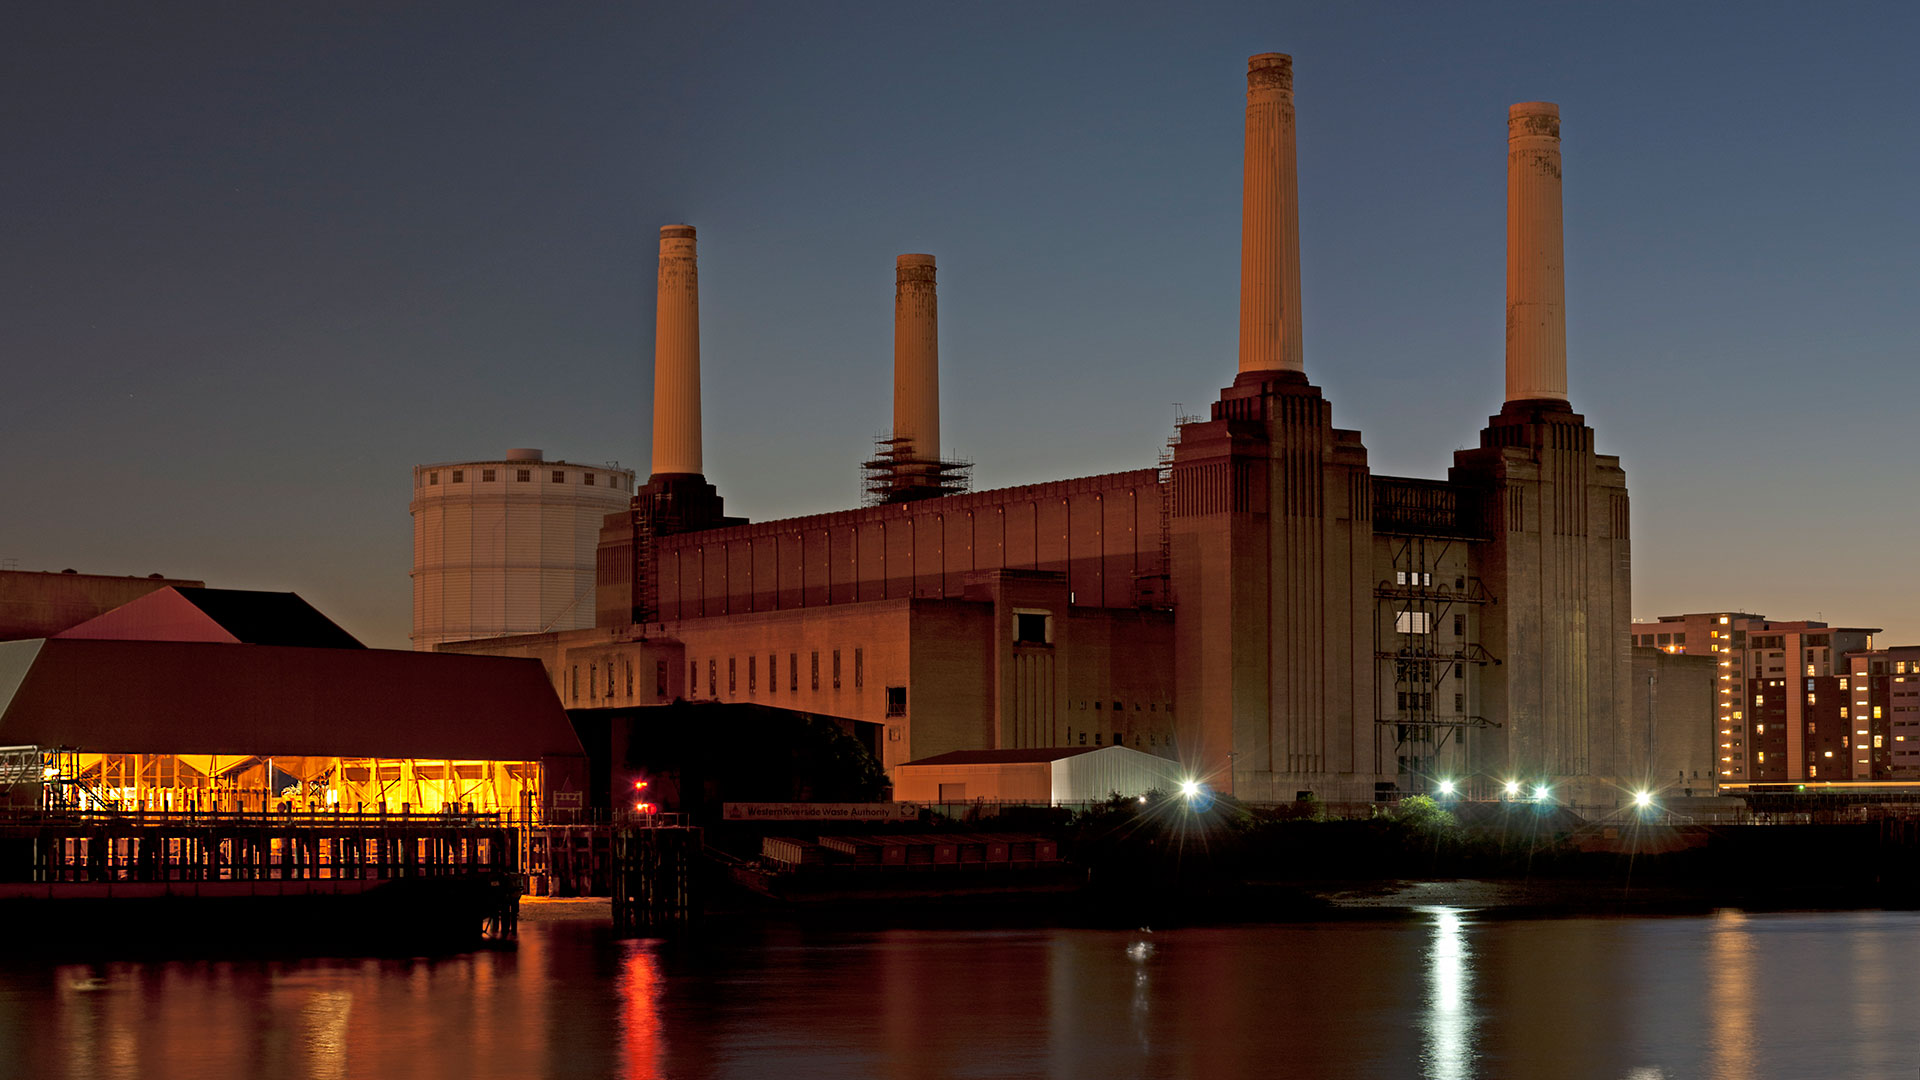 Night view of Battersea Power station in London